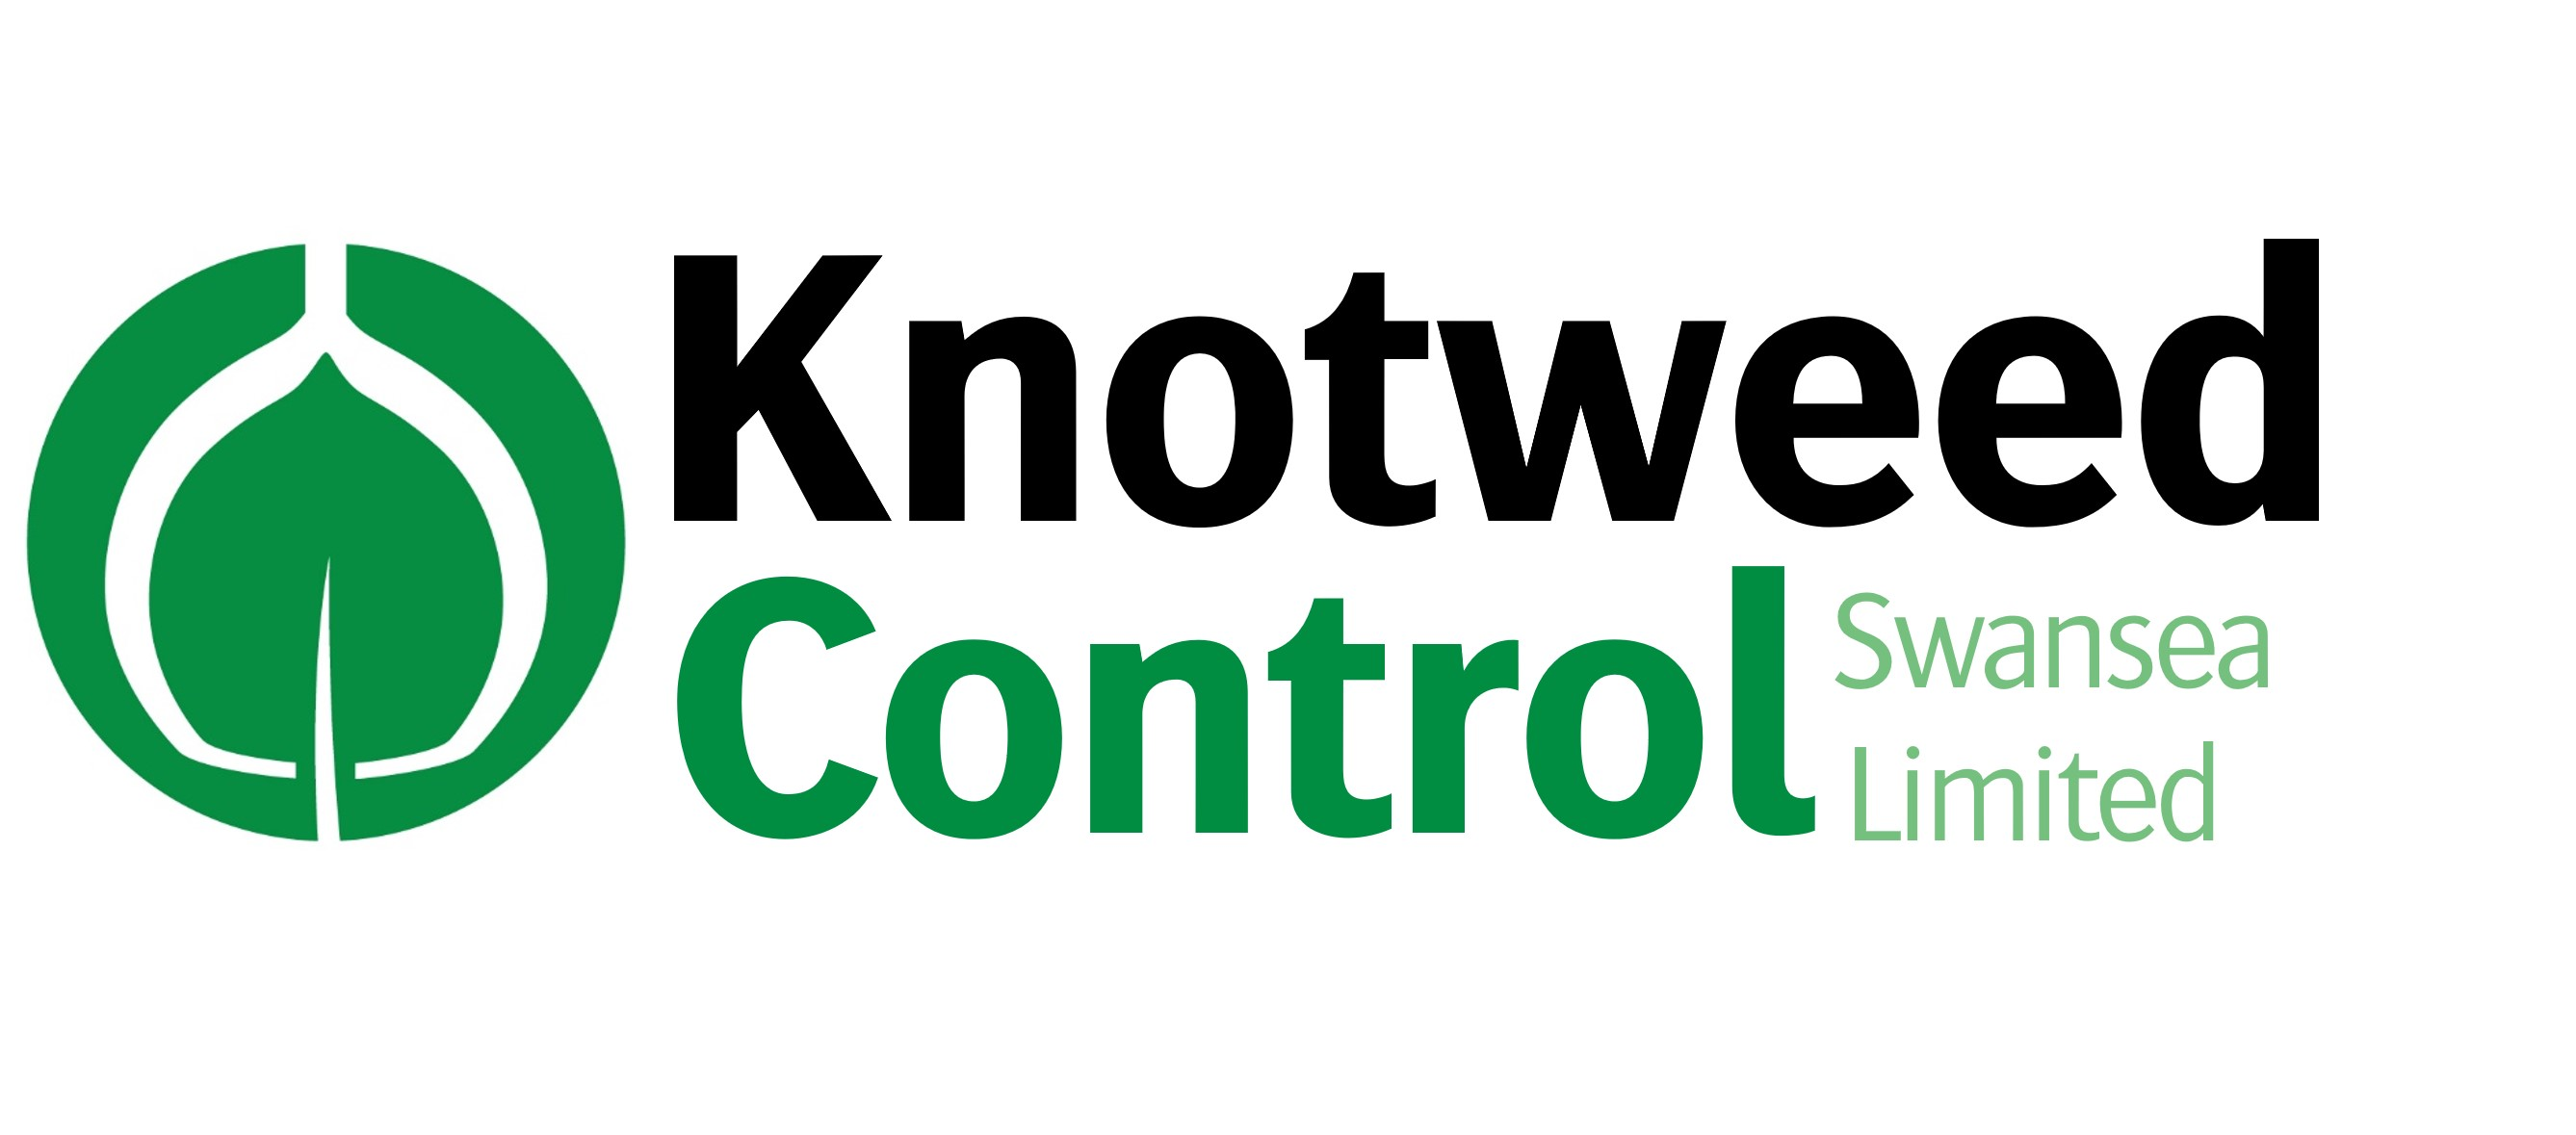 Knotweed Control Swansea Limited logo